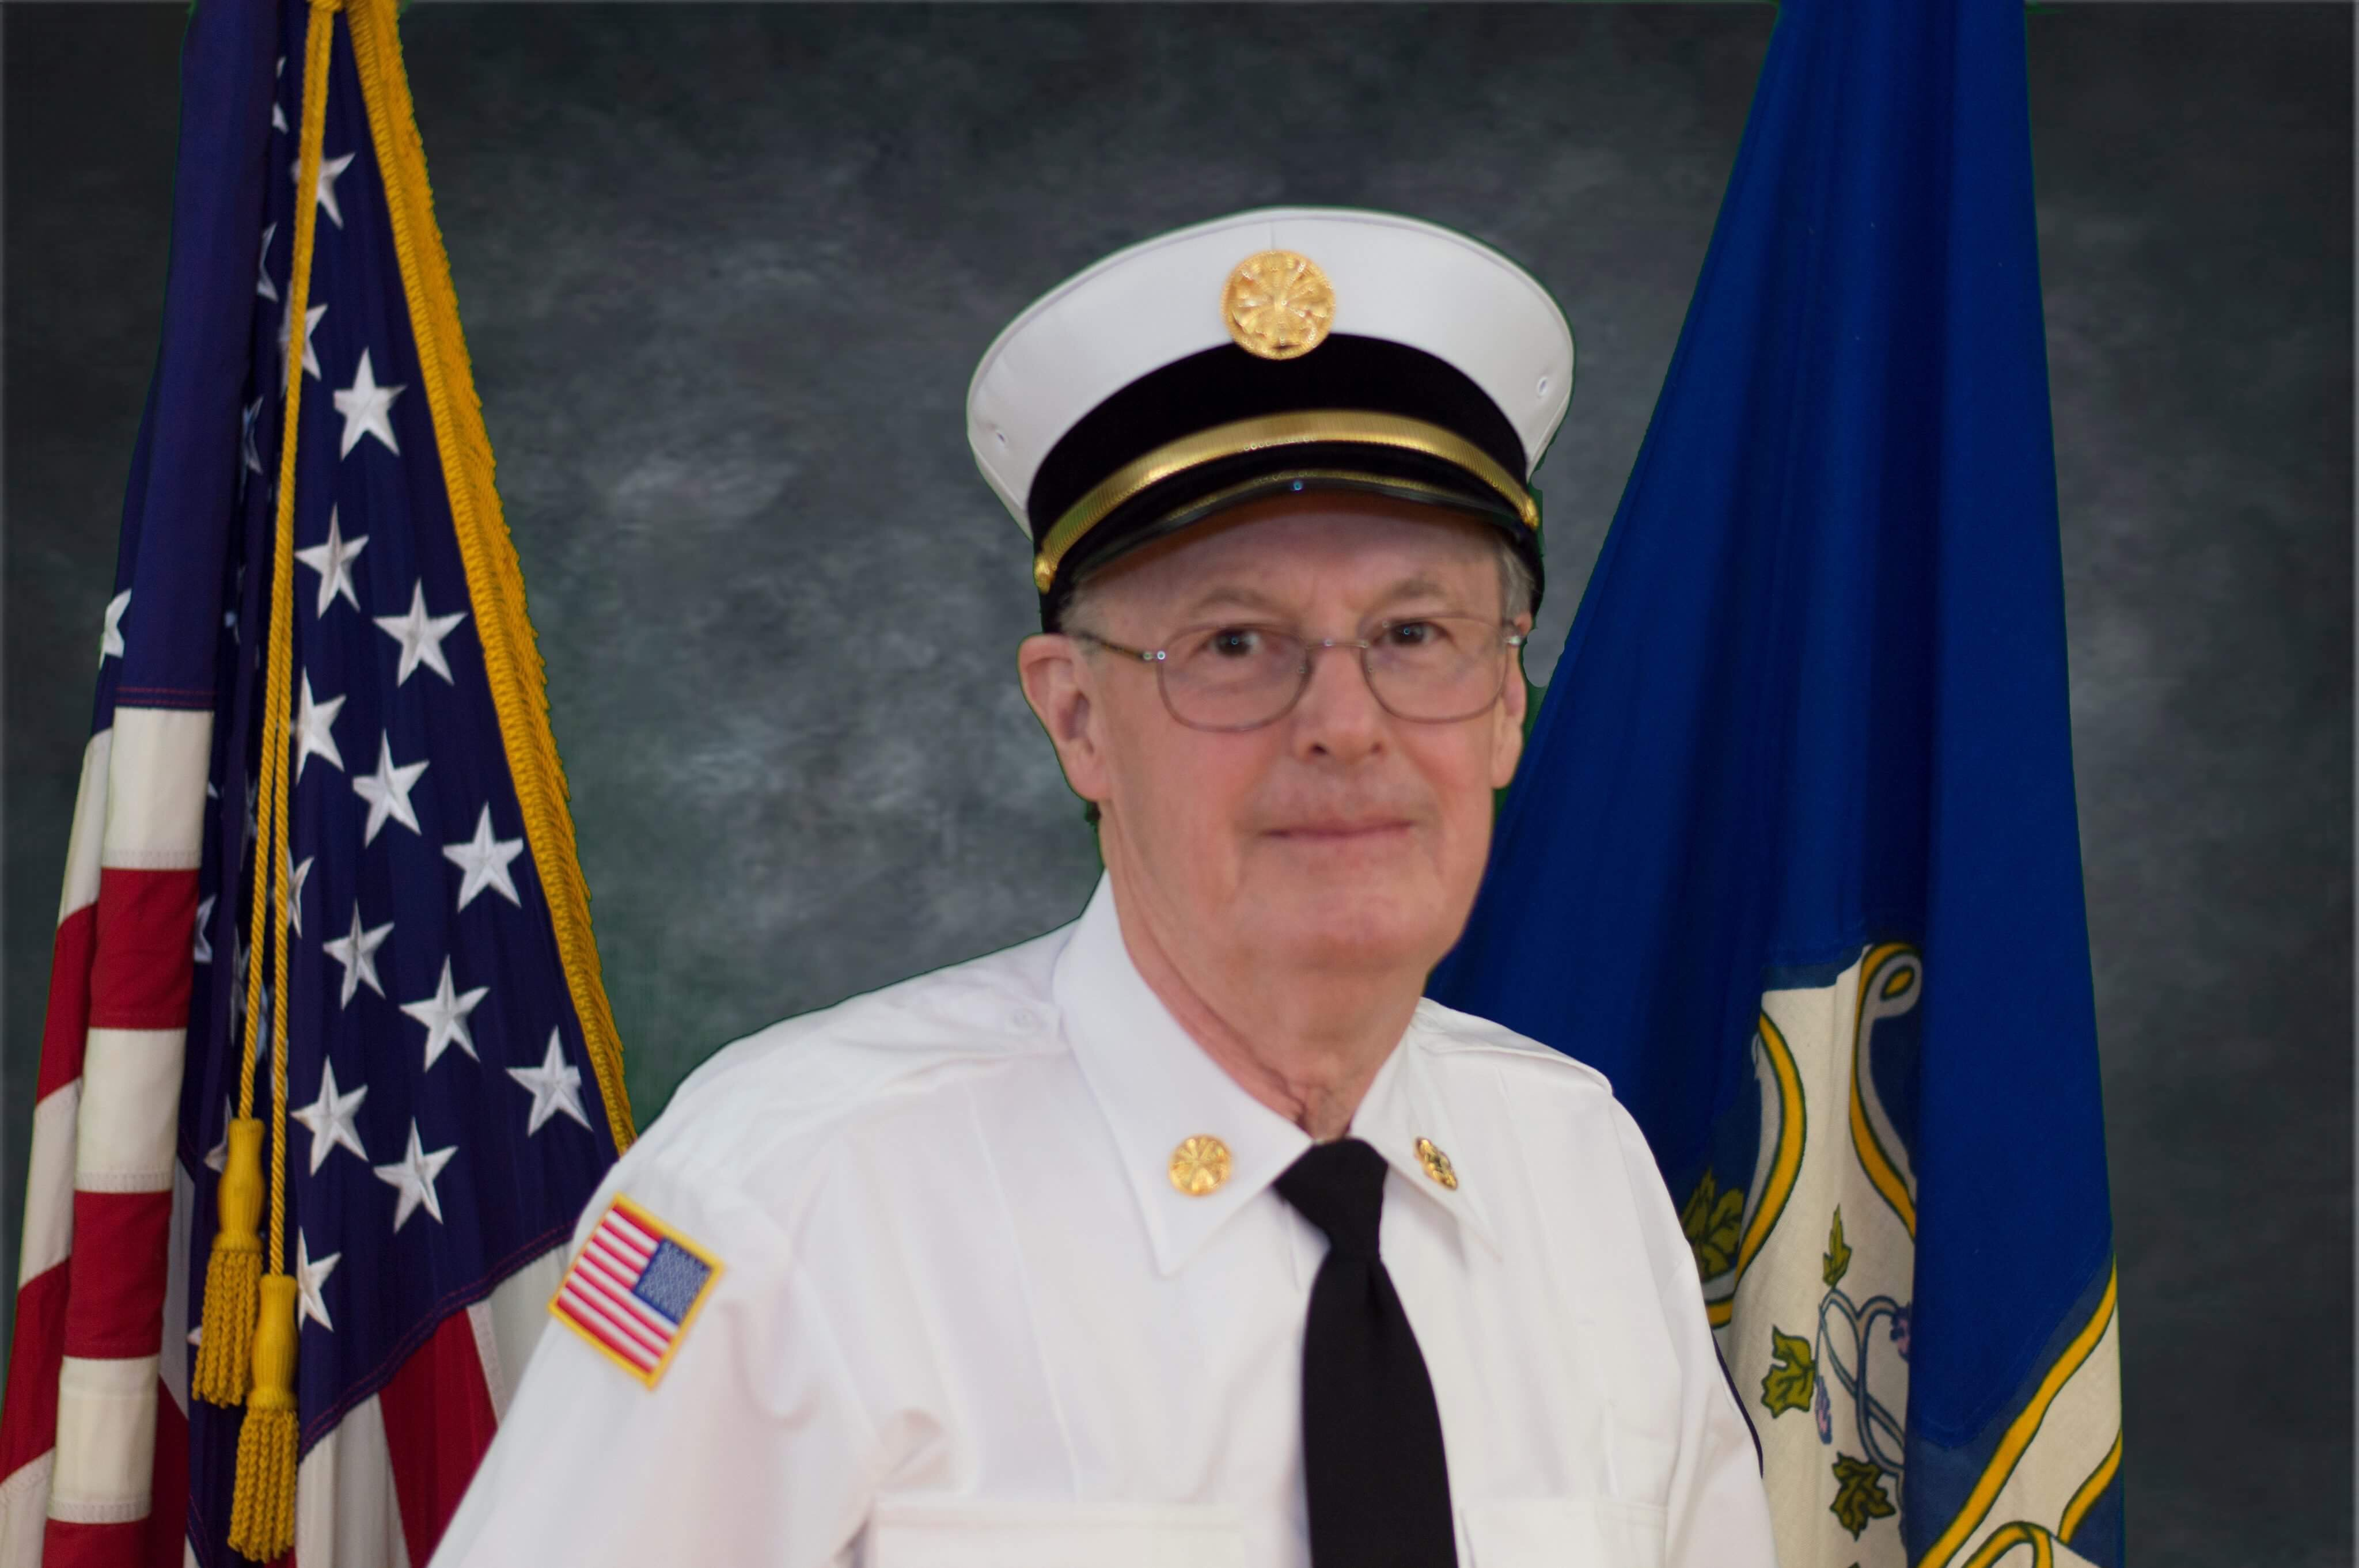 Chief Donald Leary